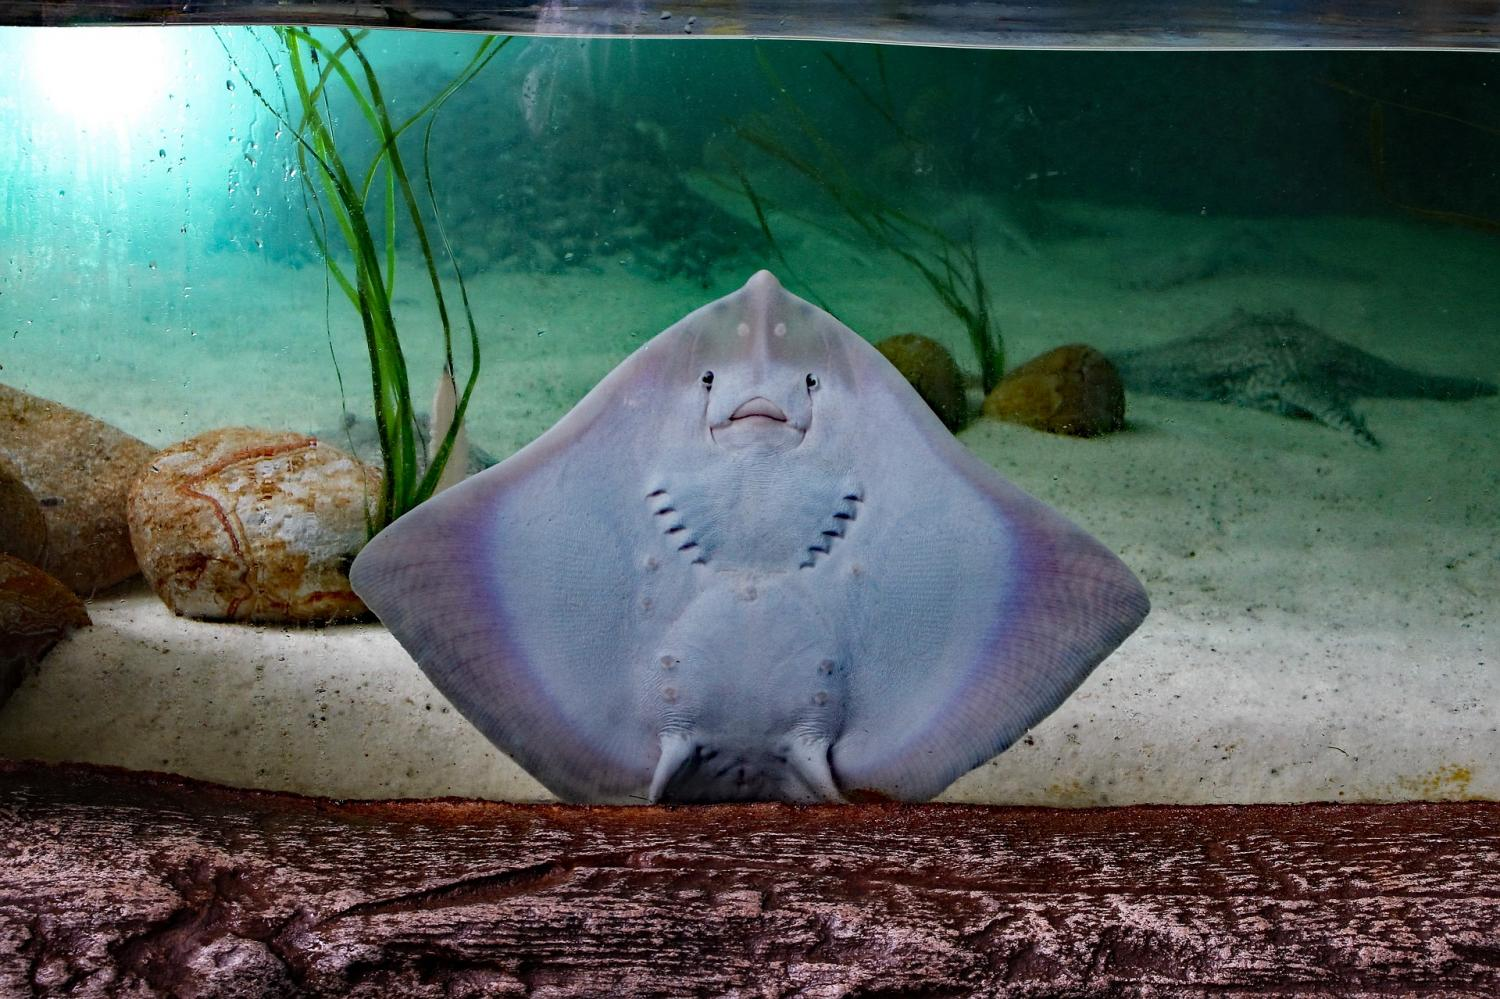 Stingrays found to chew their food before swallowing for Is a stingray a fish